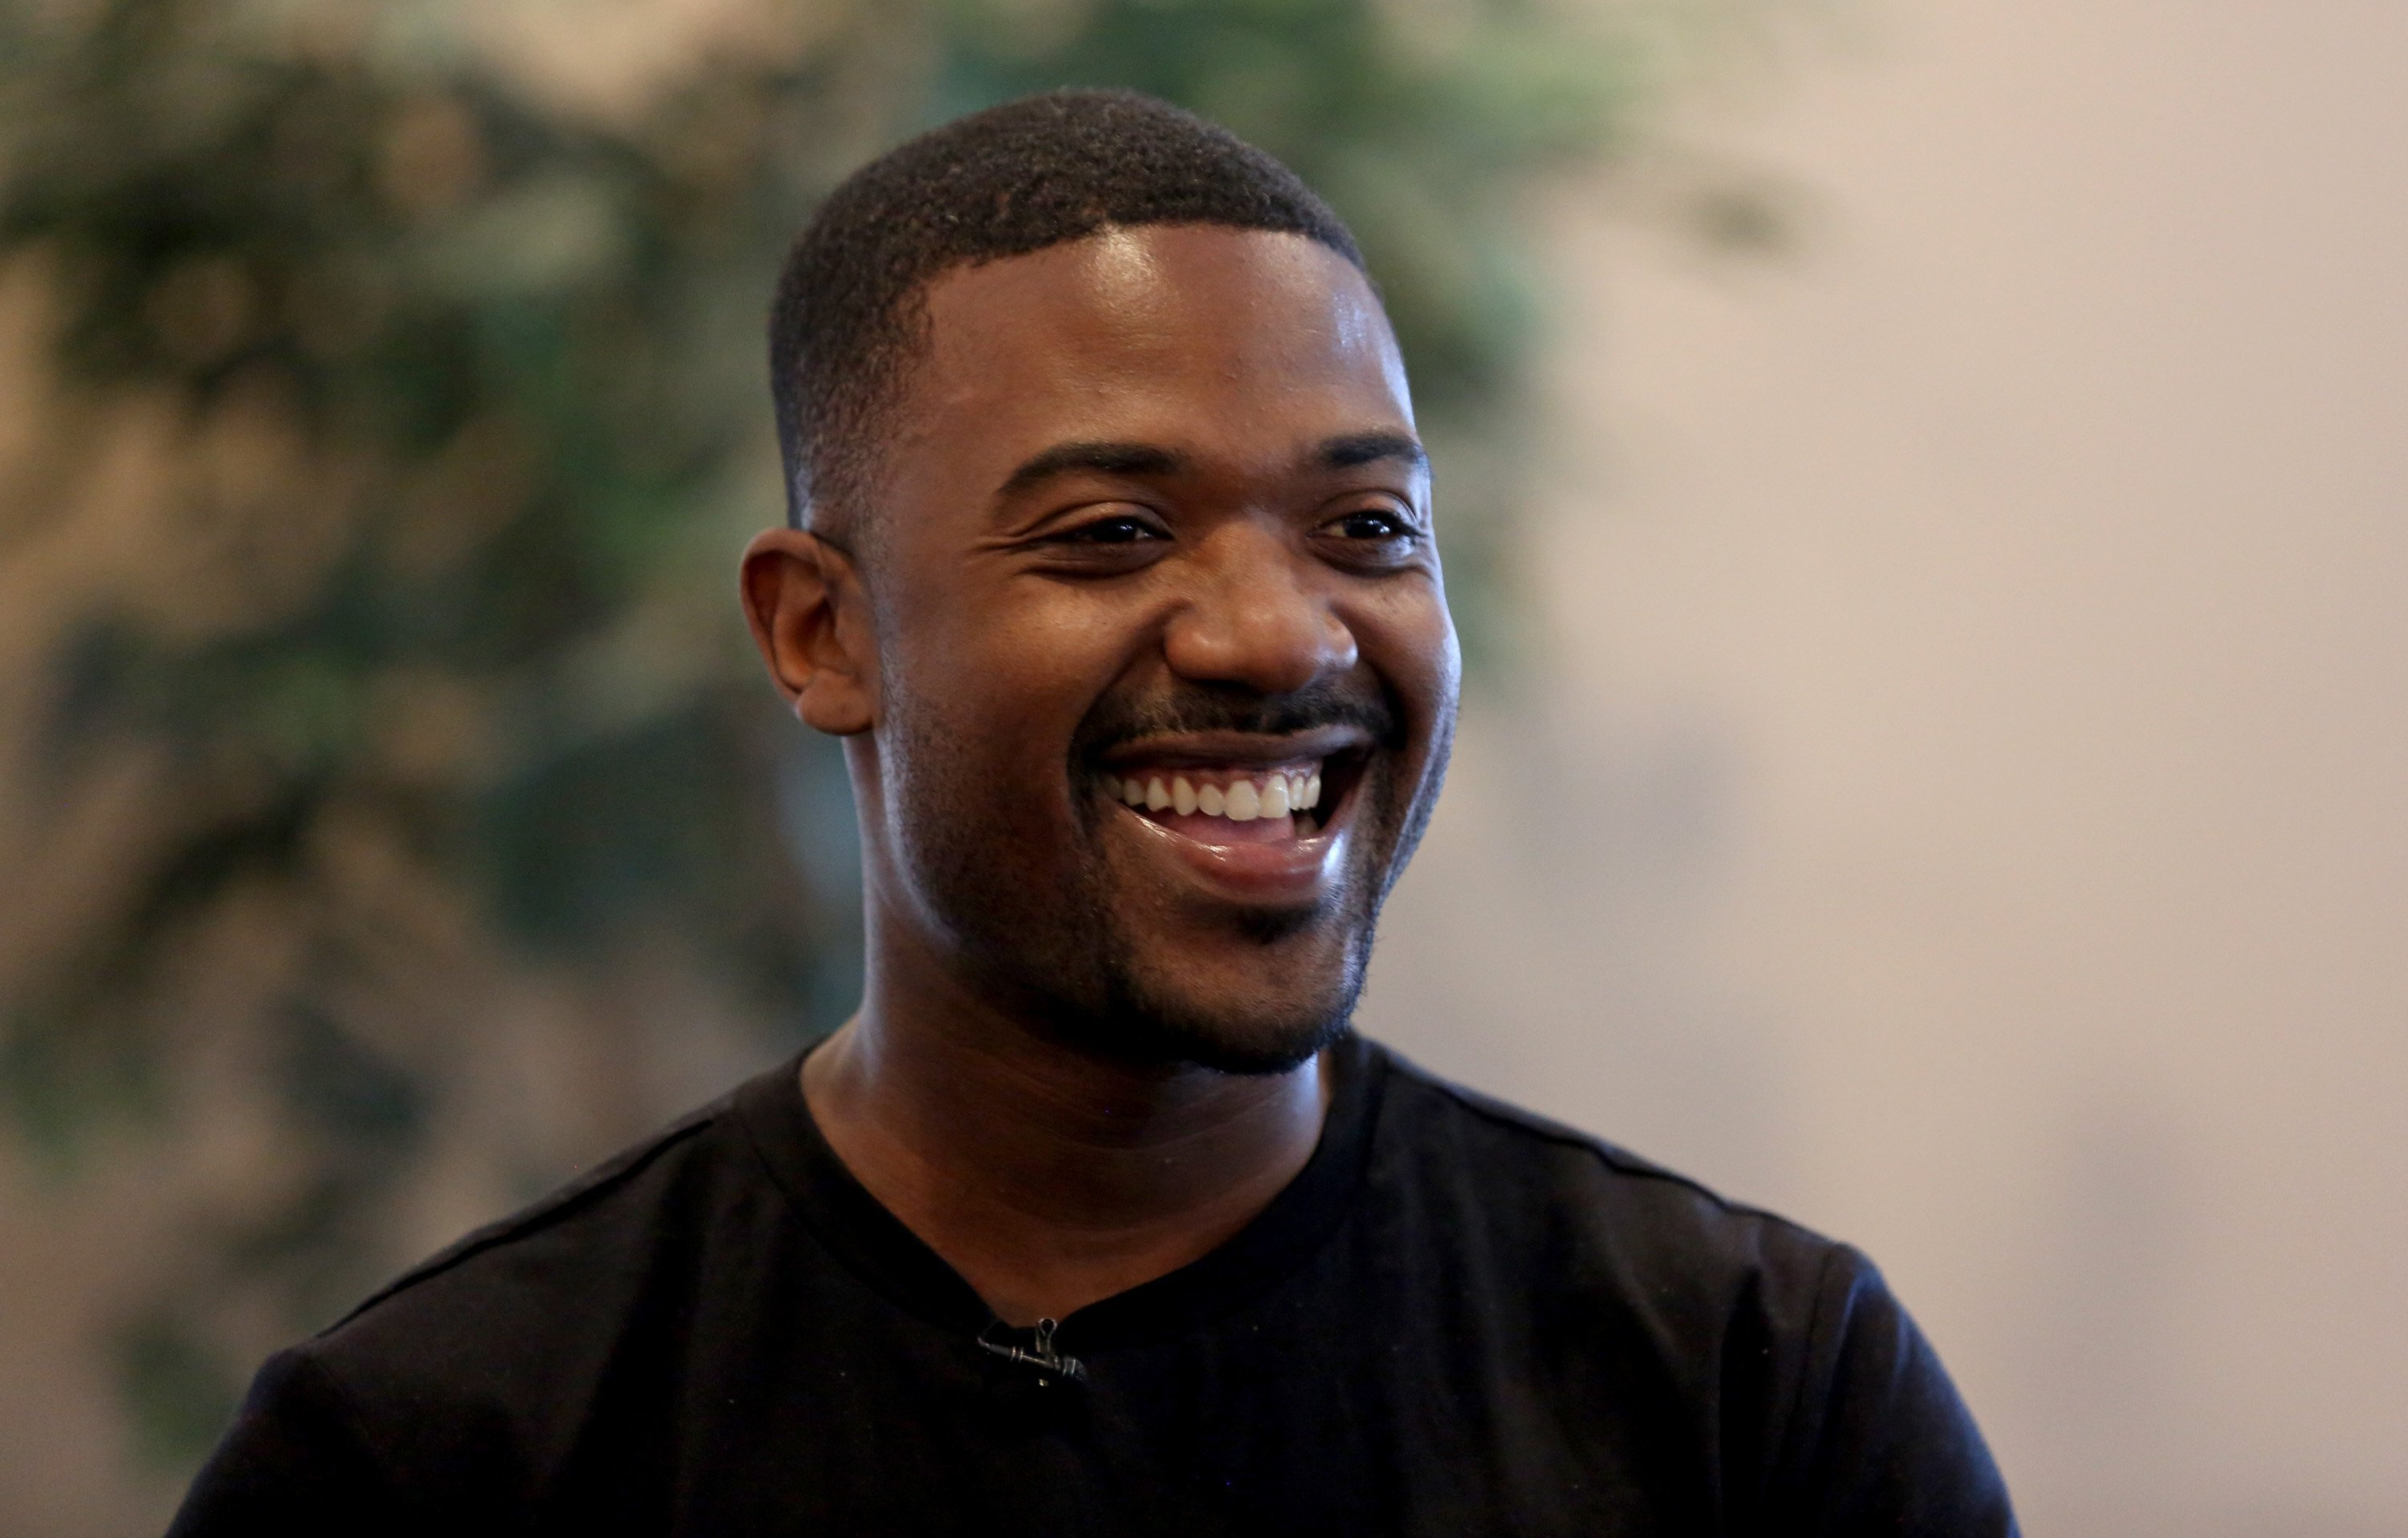 """Singer/actor Ray J attends a meet-and-greet for the """"Homes 4 Heroes"""" television project on June 19, 2017 